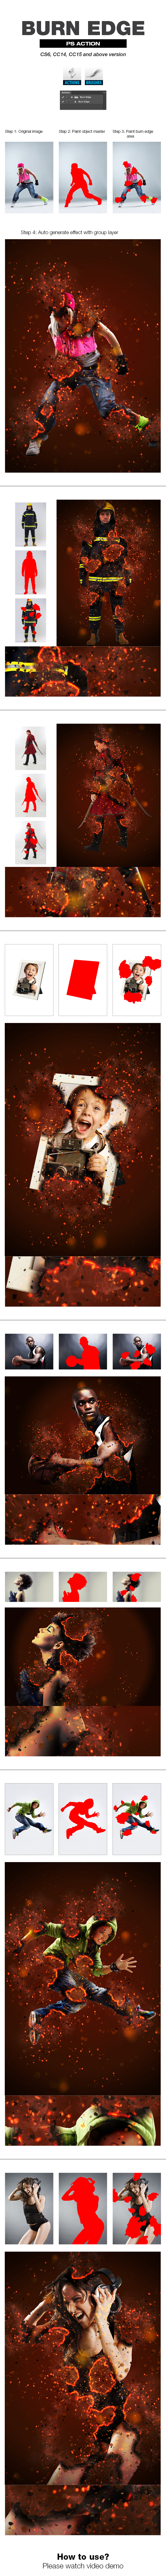 Burn Edge - Photo Effects Actions